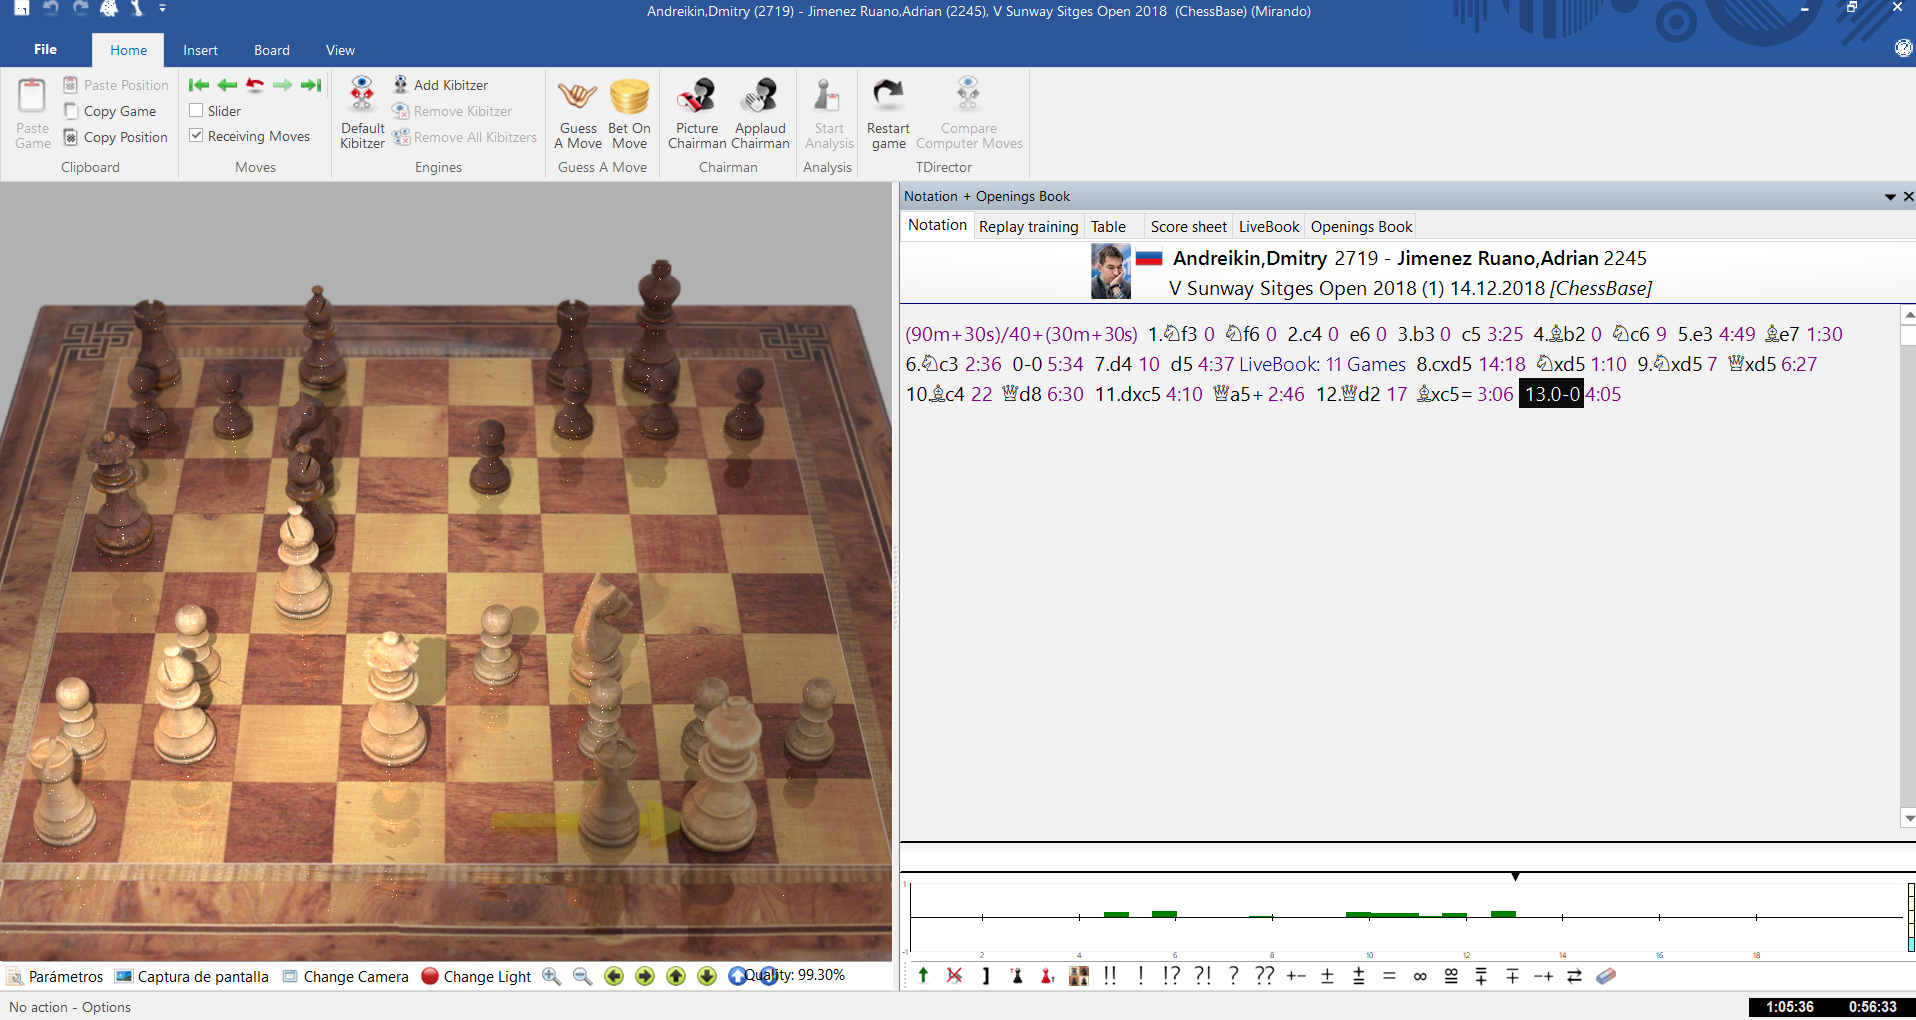 Make chess art with ChessBase 15 raytracing | ChessBase